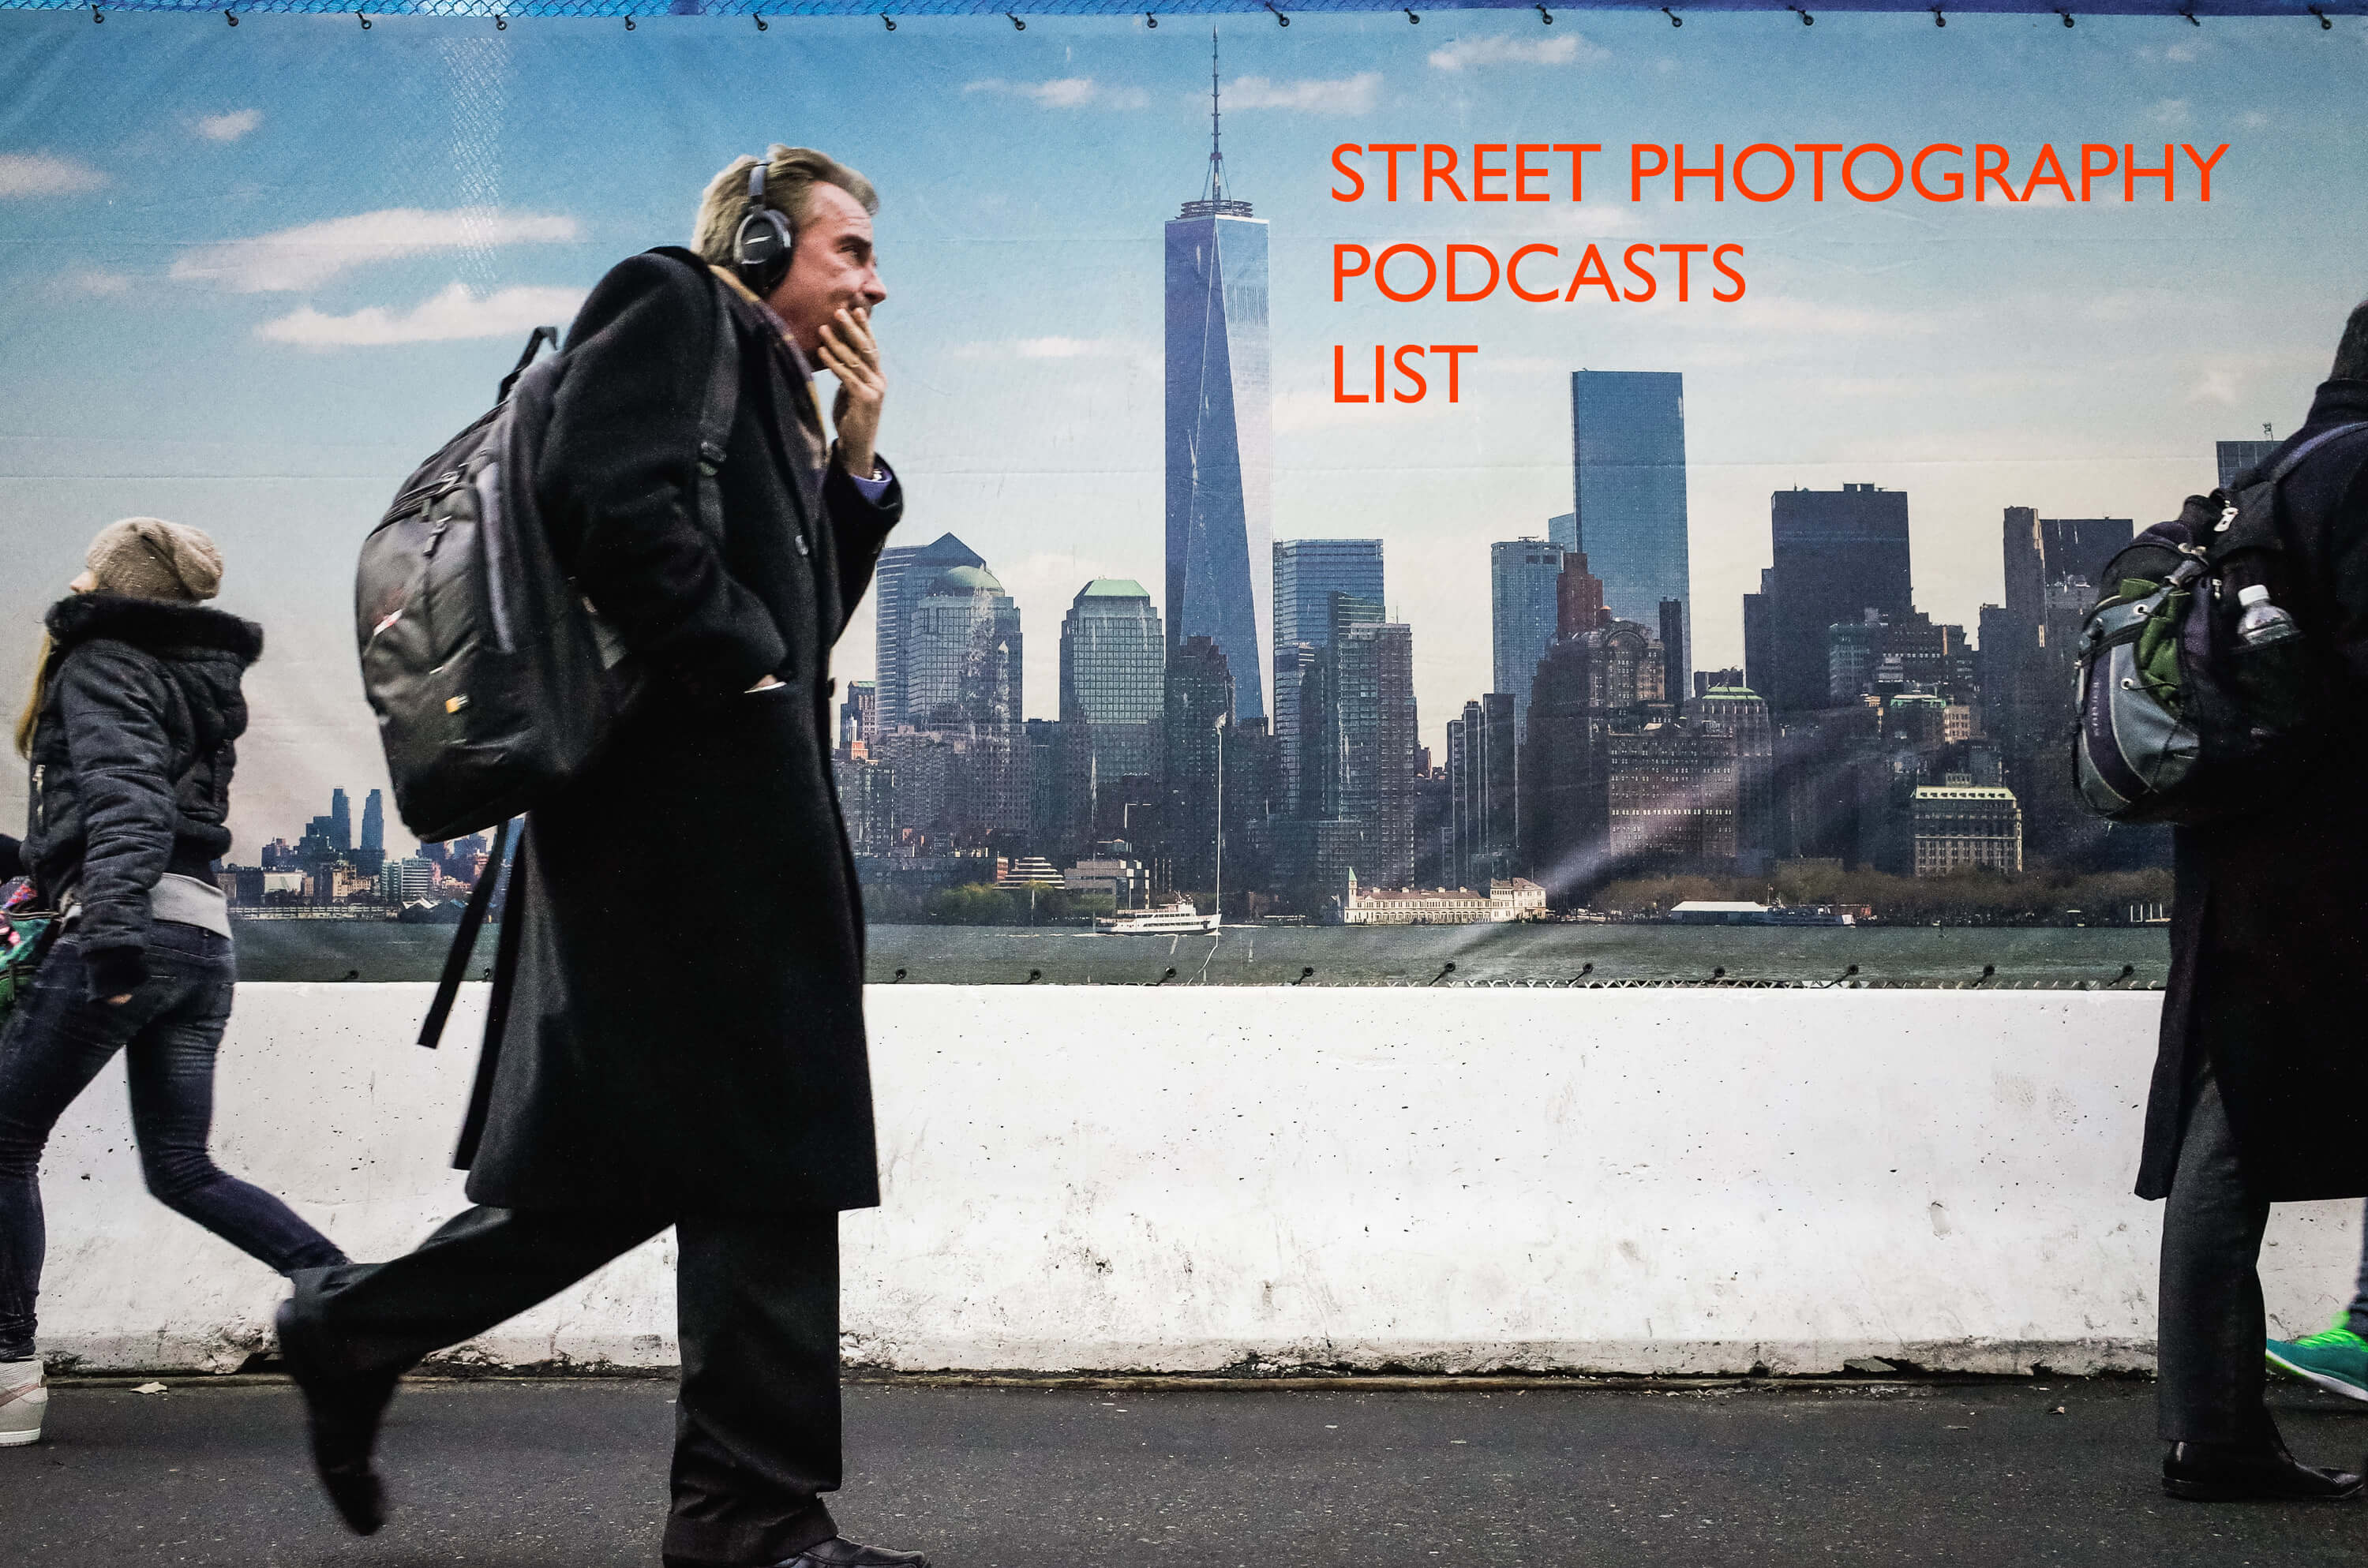 Listening to all Street Photography Podcasts in New York City